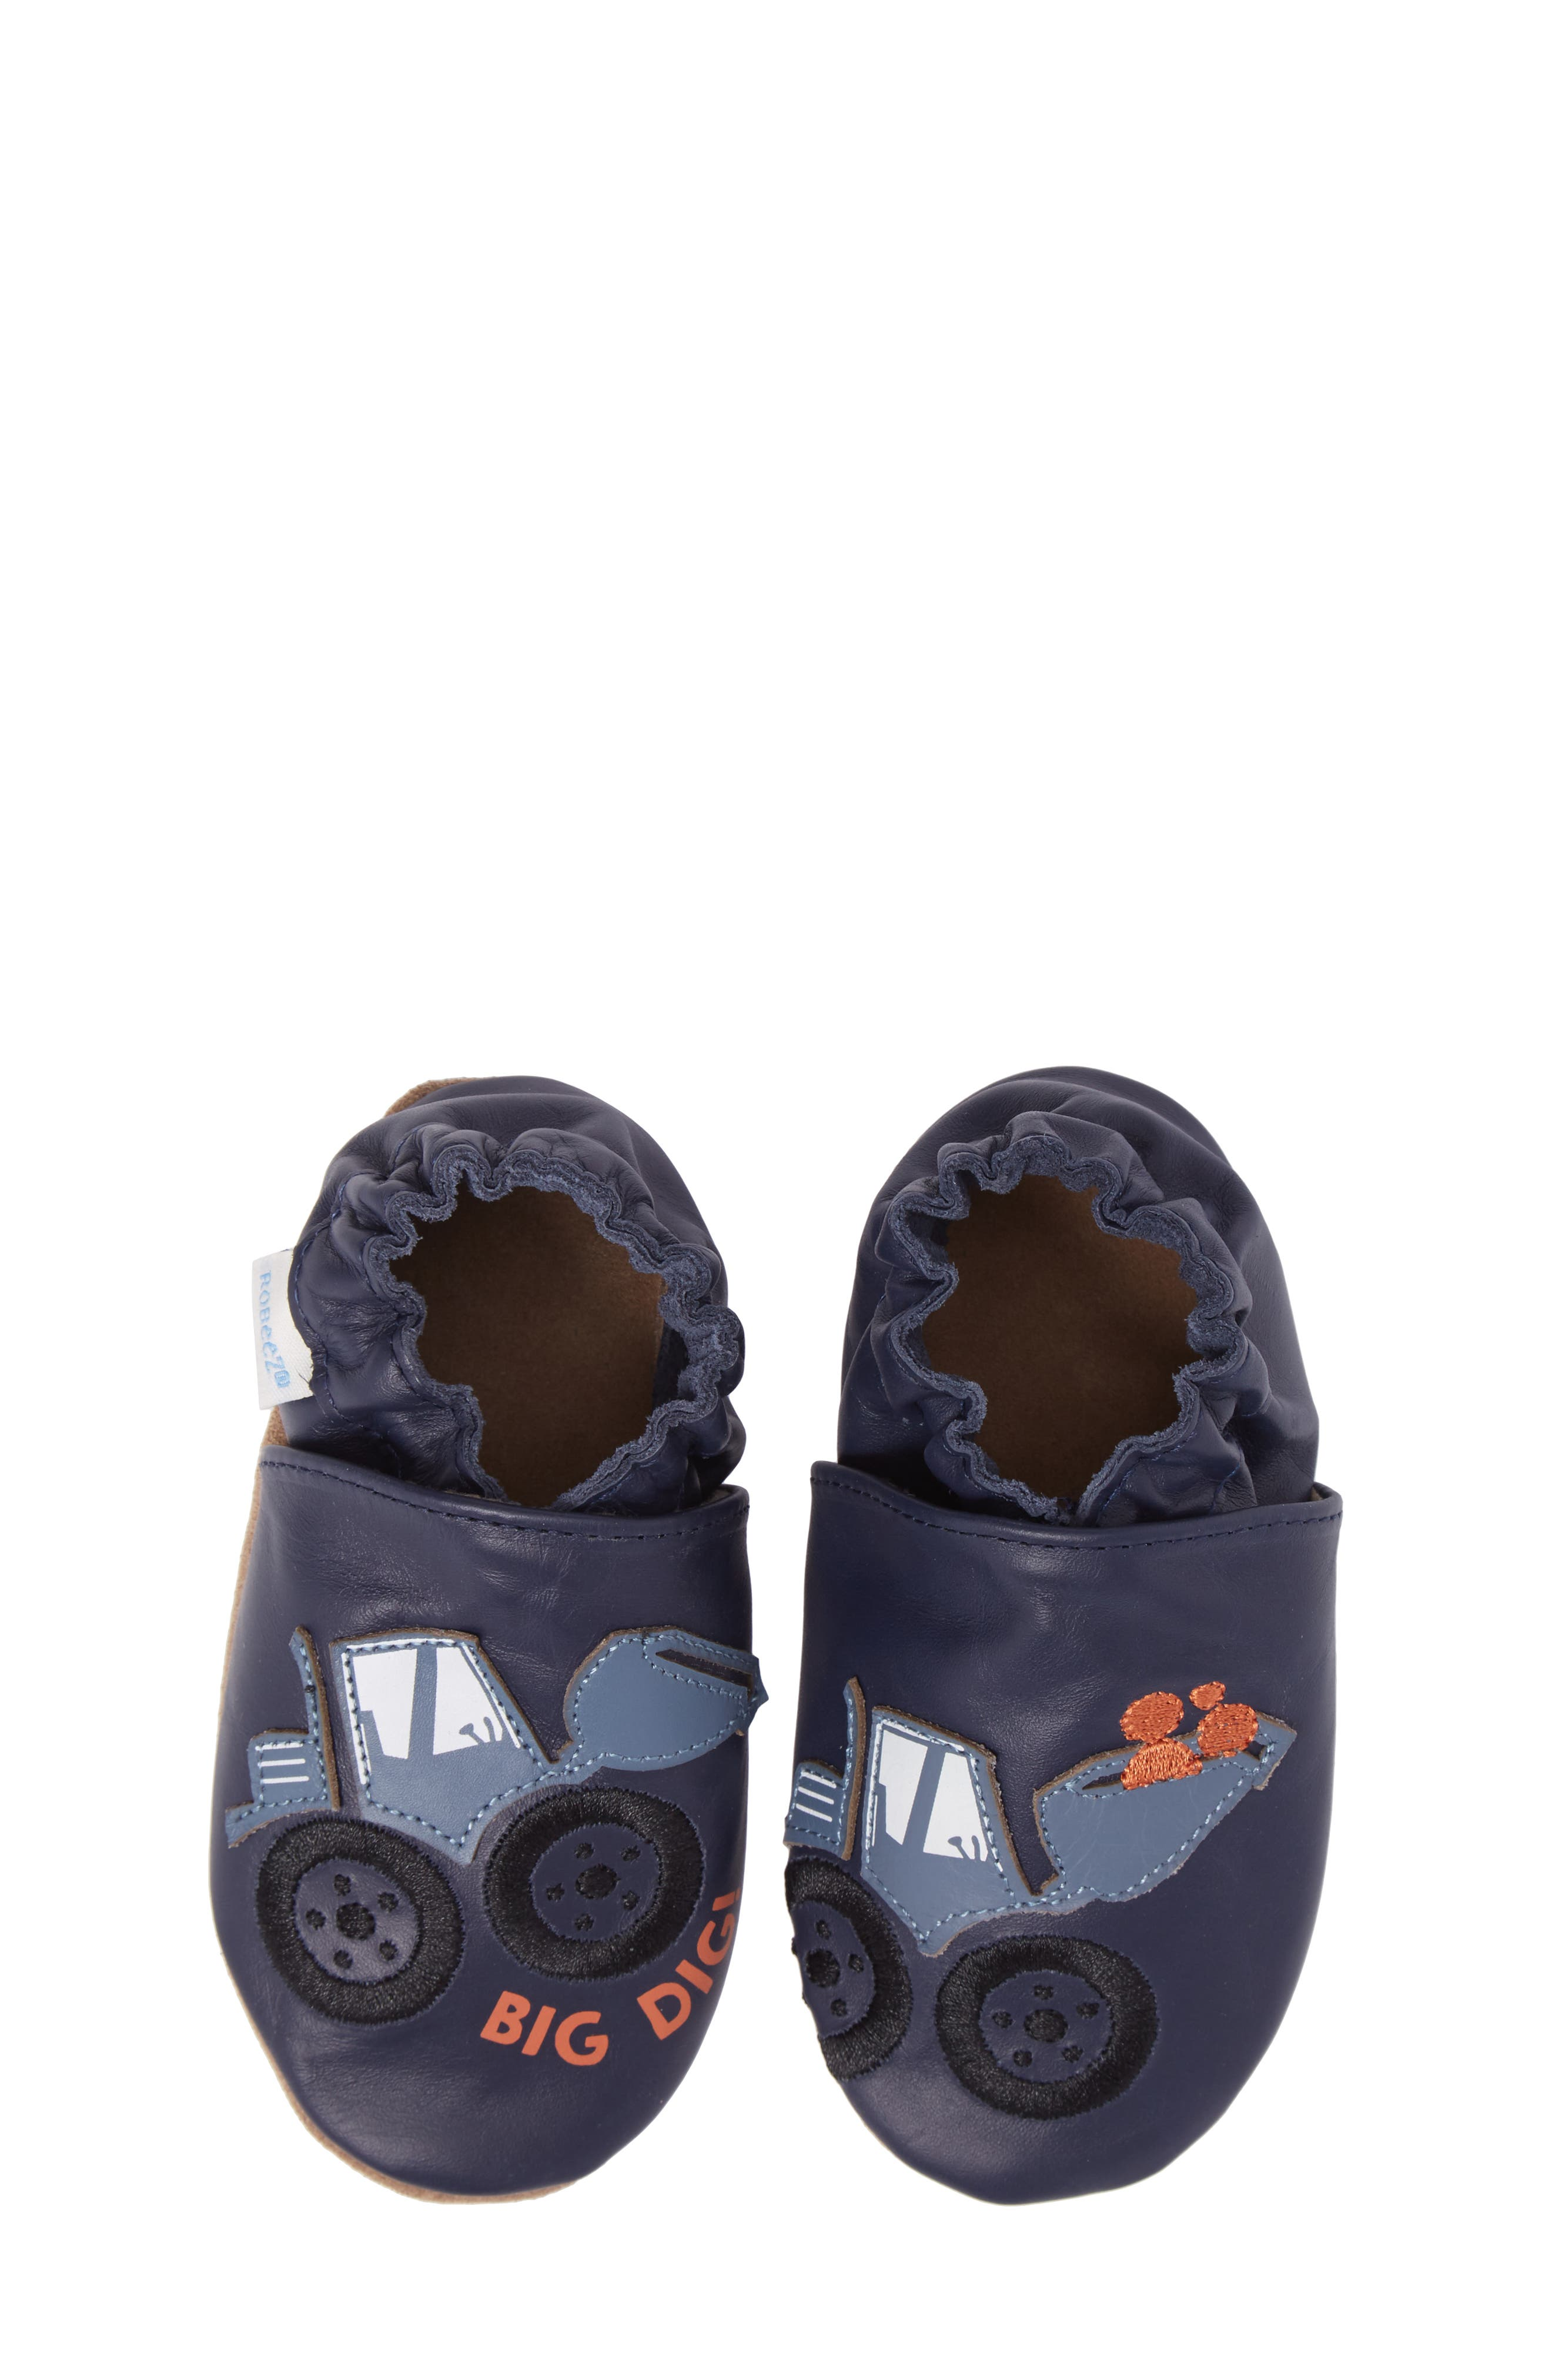 Main Image - Robeez® Big Dig Crib Shoe (Baby & Walker)